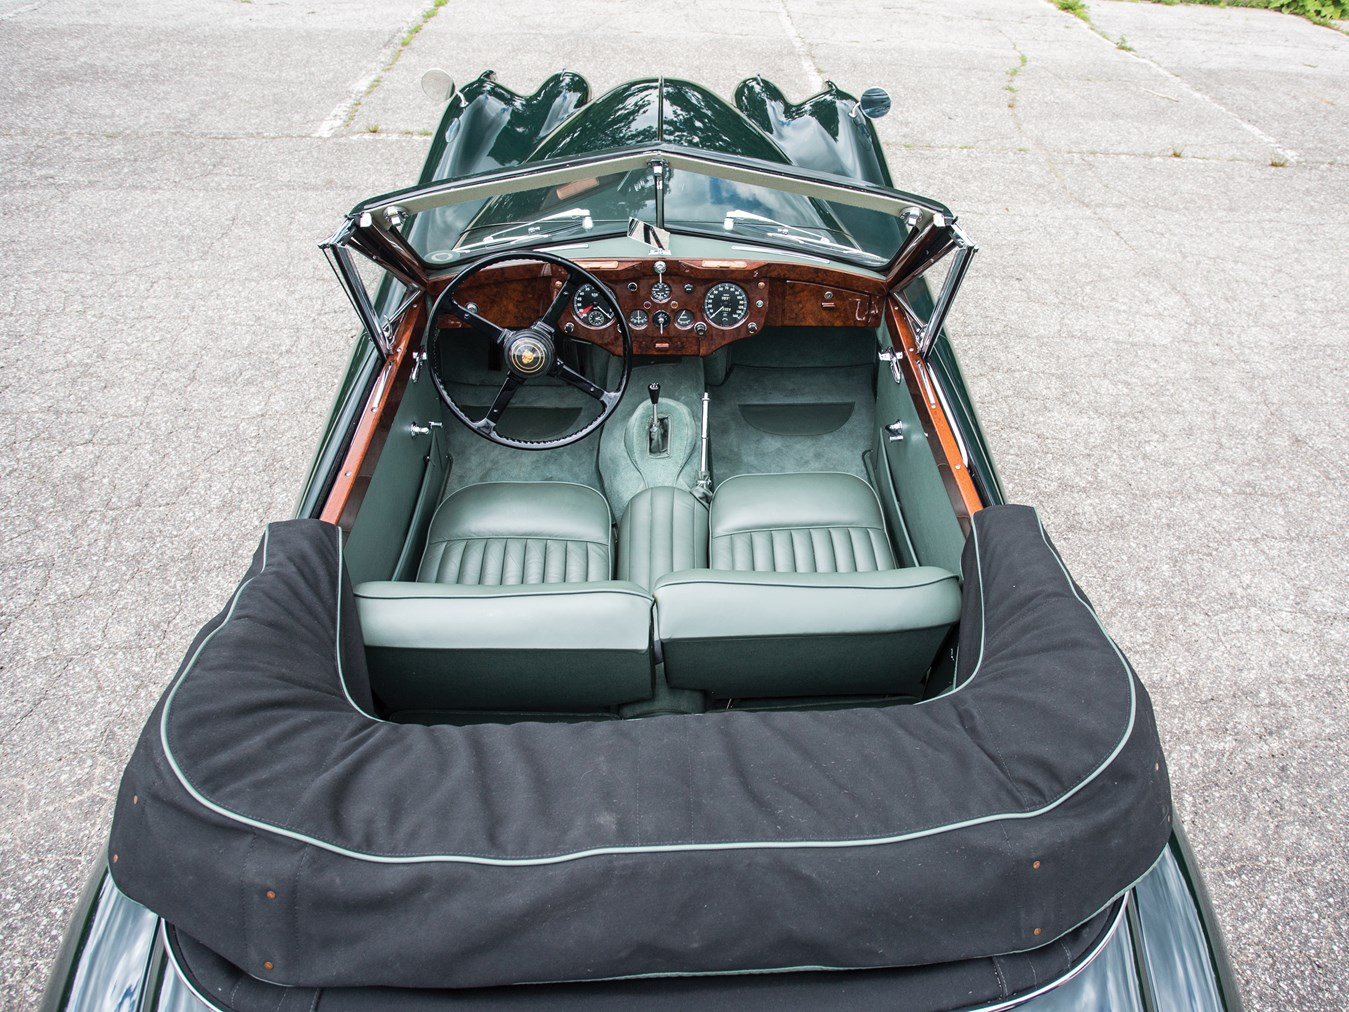 With its extended interior and improved luxury features such as wind up windows the XK140 Drophead Coupé became a rather nicer car than its predecessor.